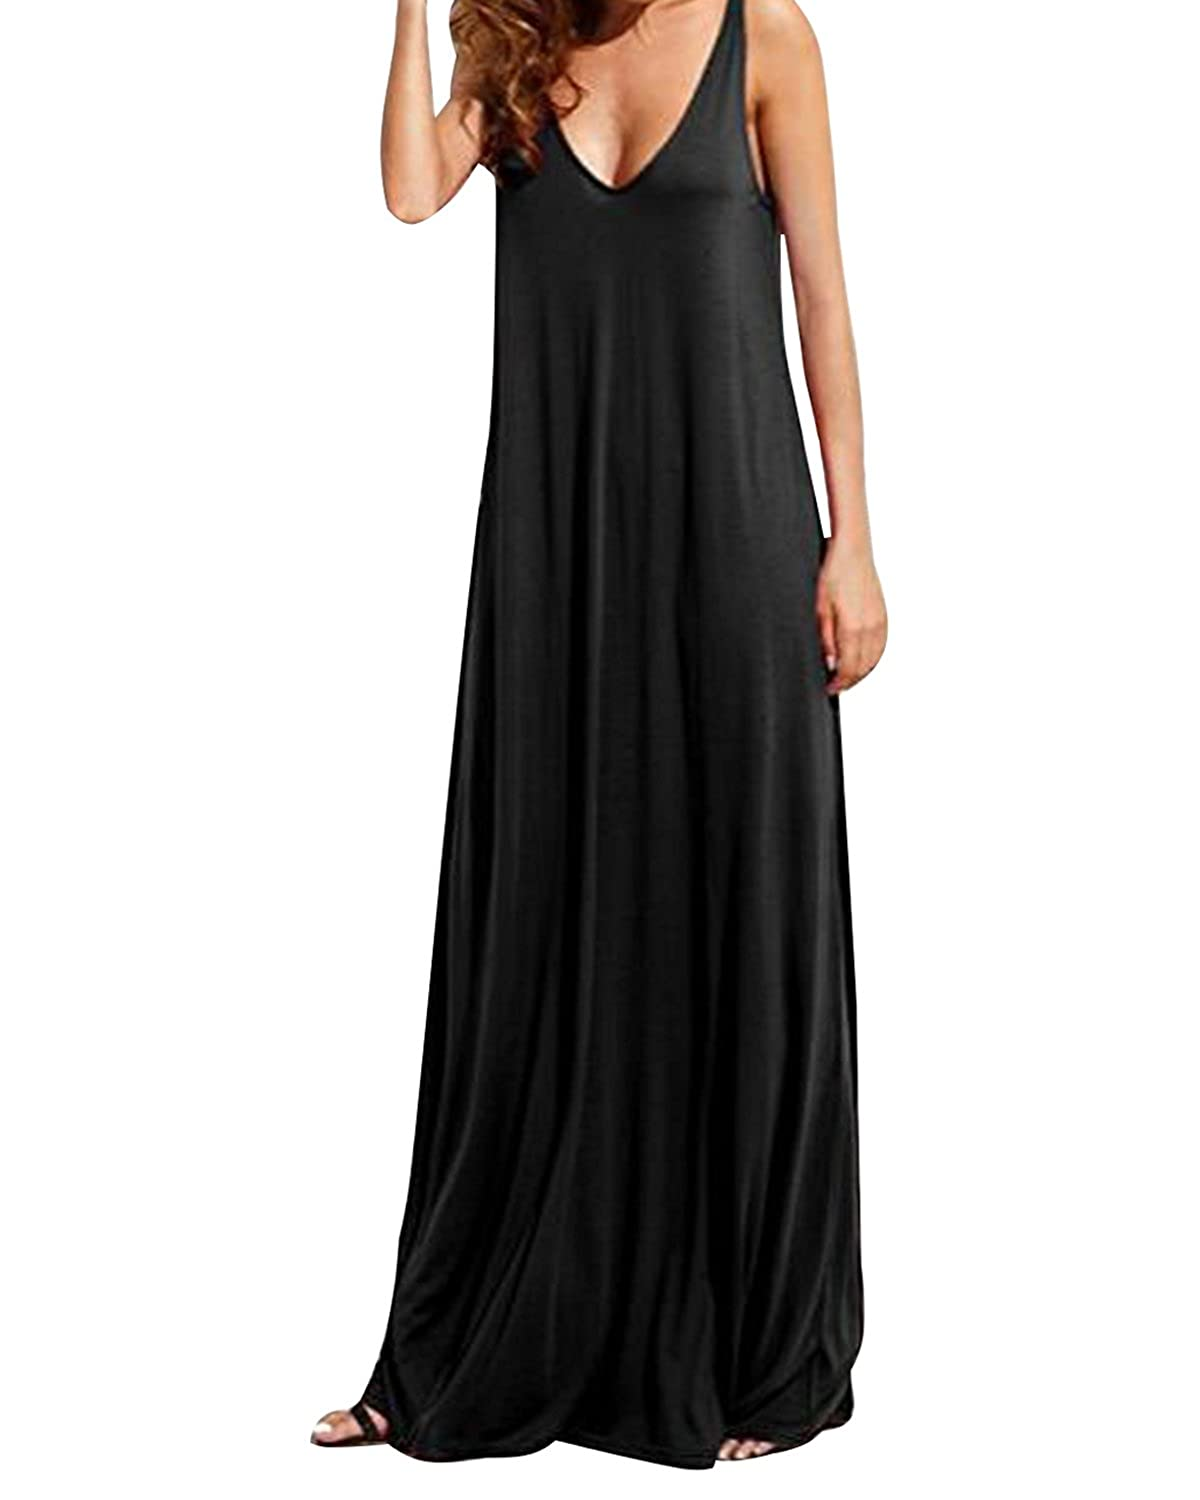 Kidsform Damen Ärmellos Kleider Sommerkleid V Ausschnitt Backless Langes Maxikleid Strandkleid Oversize Partykleid Cocktailkleid